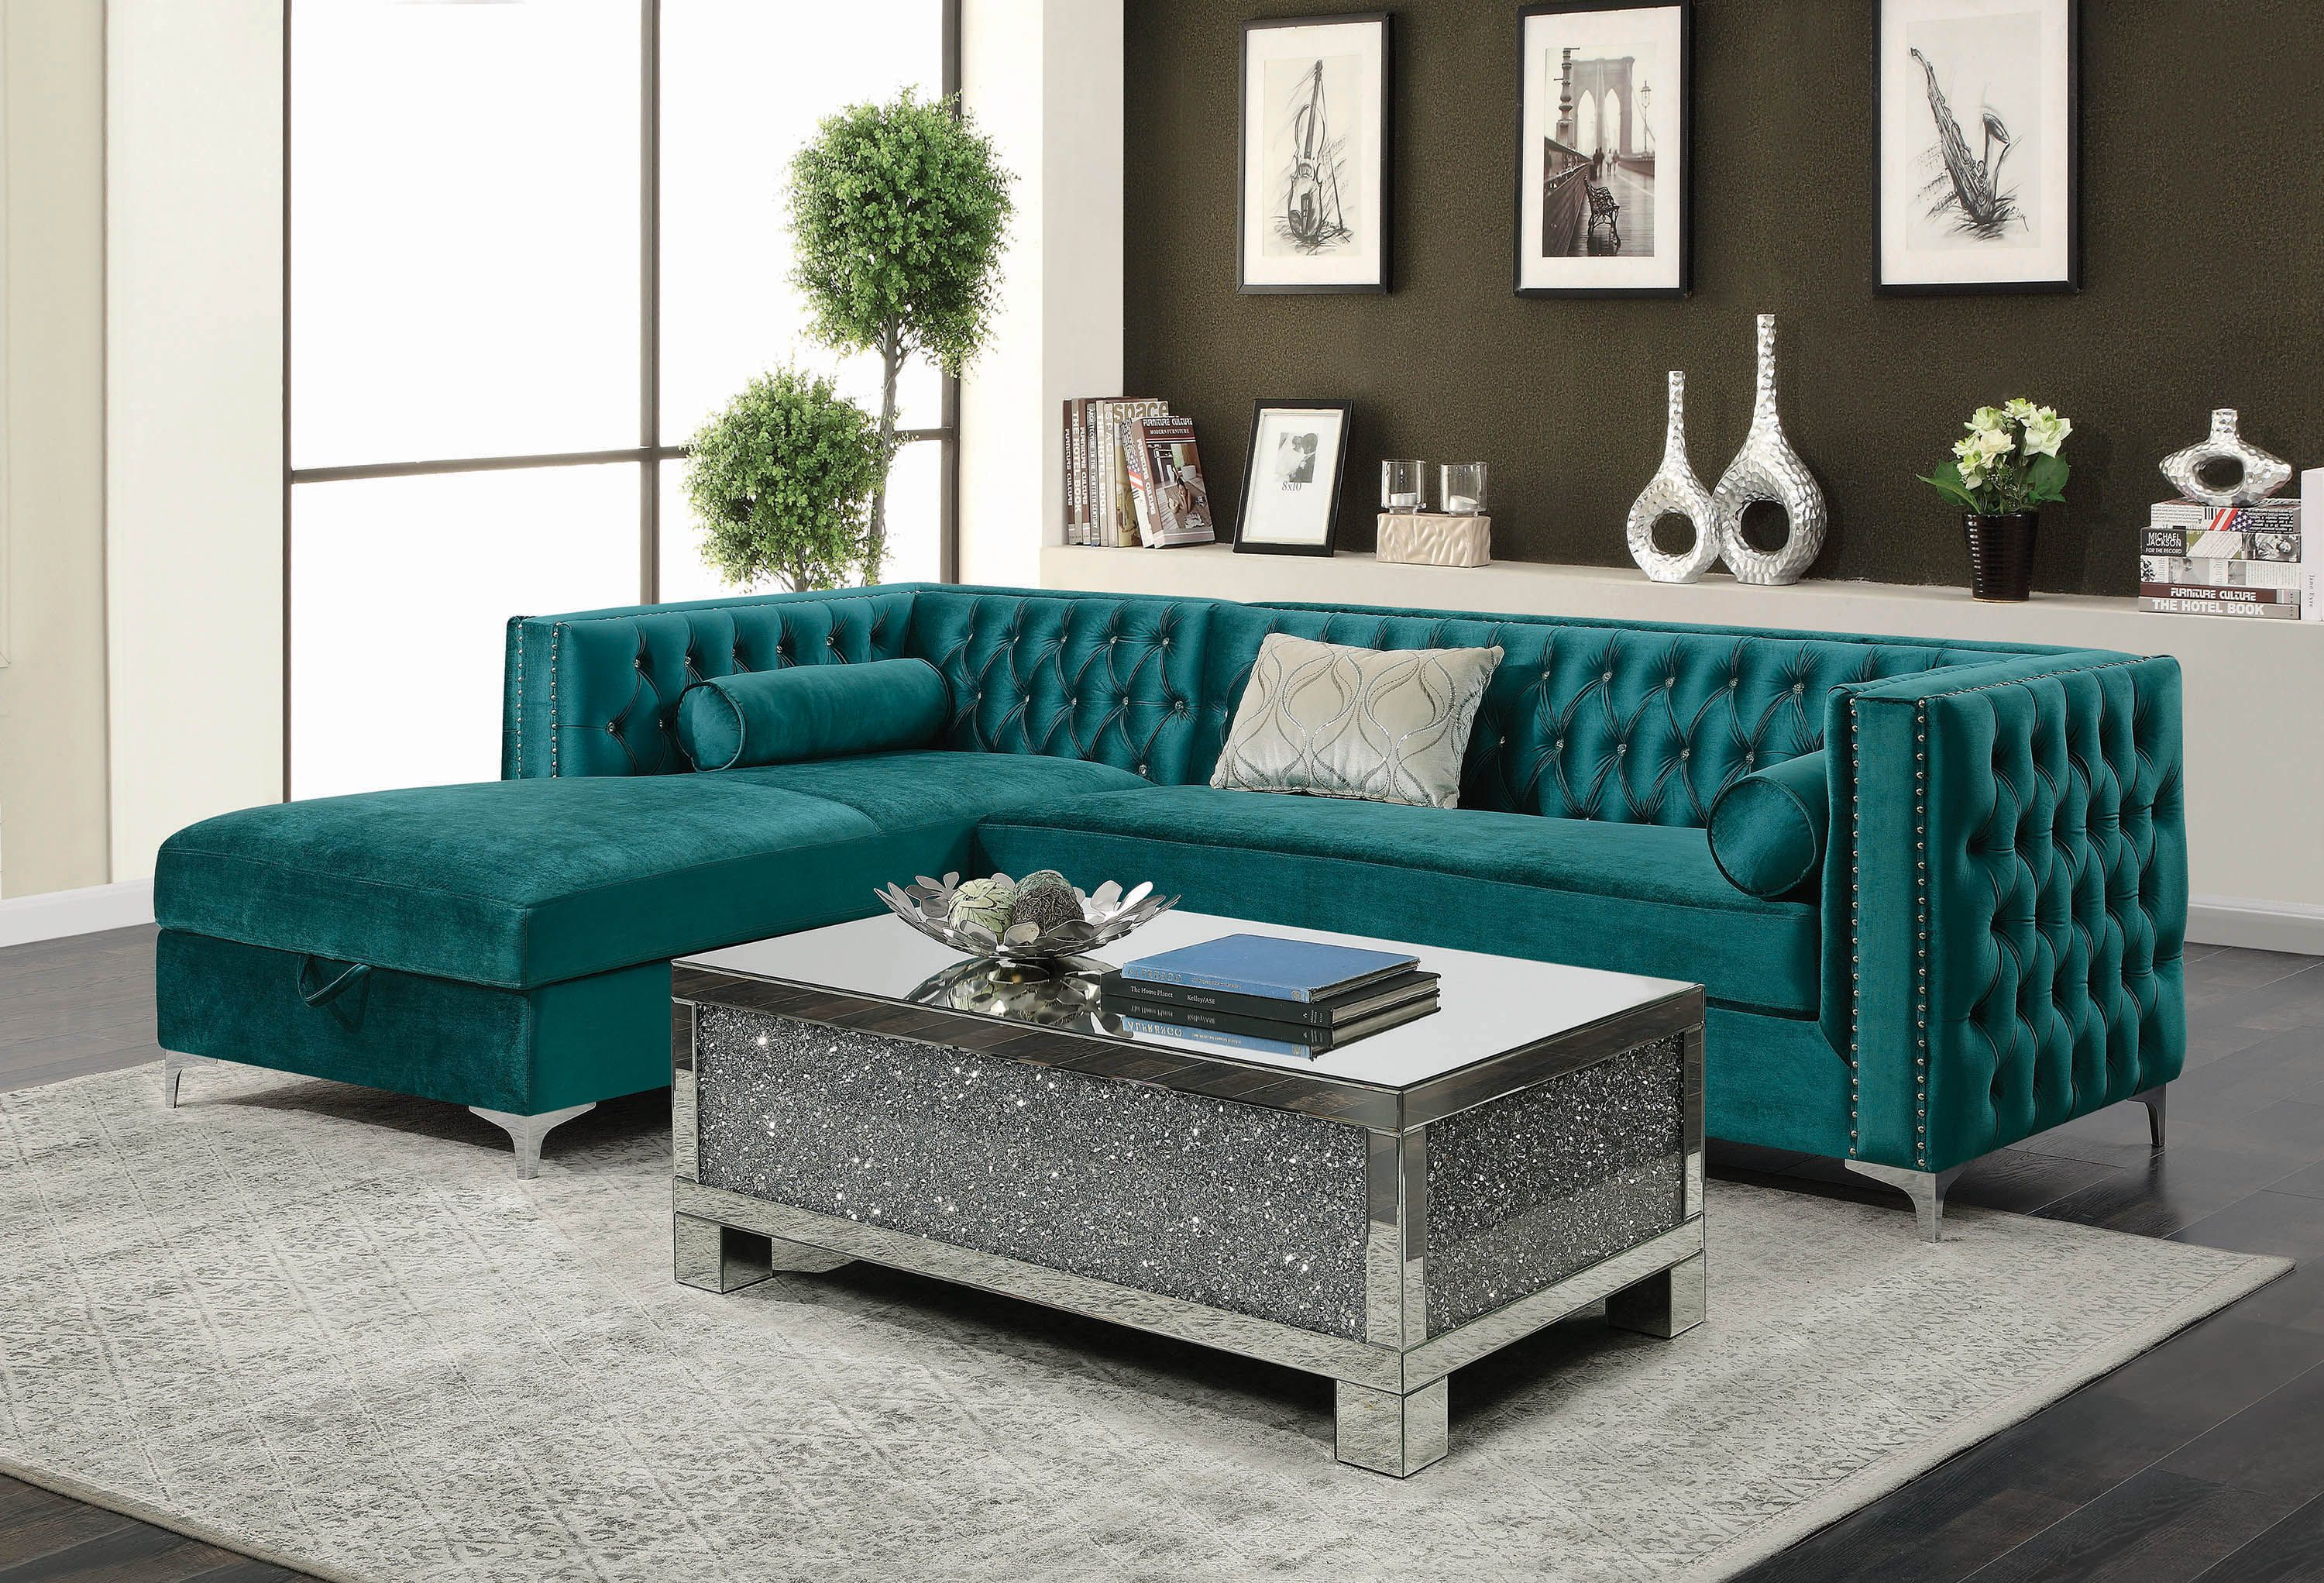 Contemporary Teal Velvet And Chrome Storage Sectional Including Pillows Living Room Sets Furniture Fabric Sectional Sofas Living Room Sectional